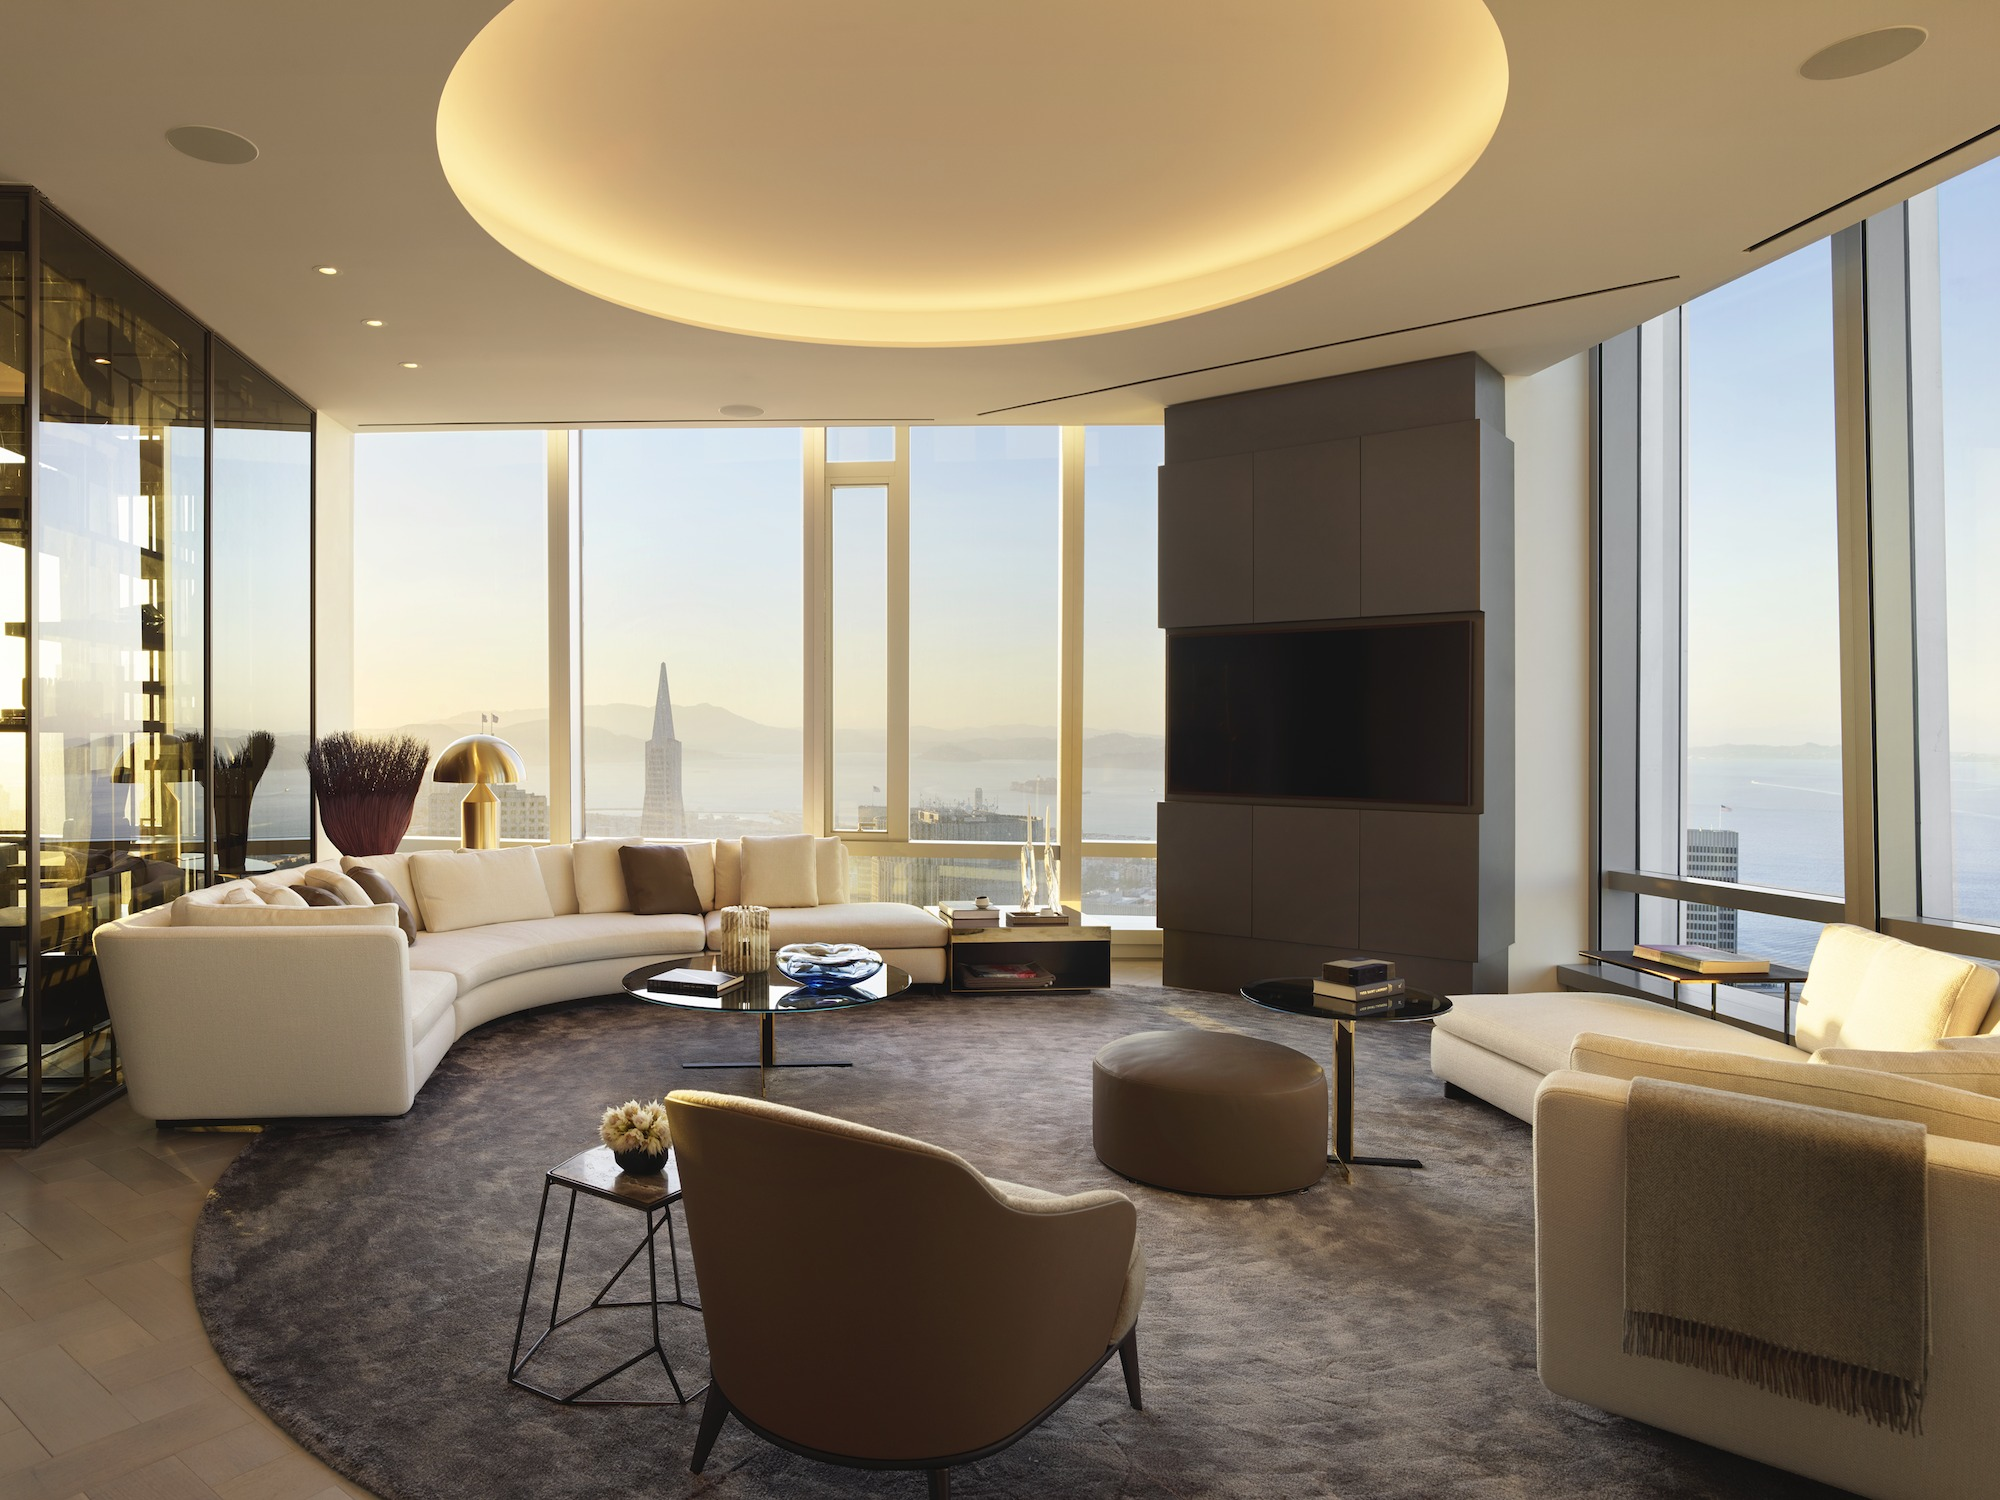 A living room with a circular indentation in the ceiling with recessed lighting inside, widows galore with views of the city and the fog, and half-circle couch and seating.